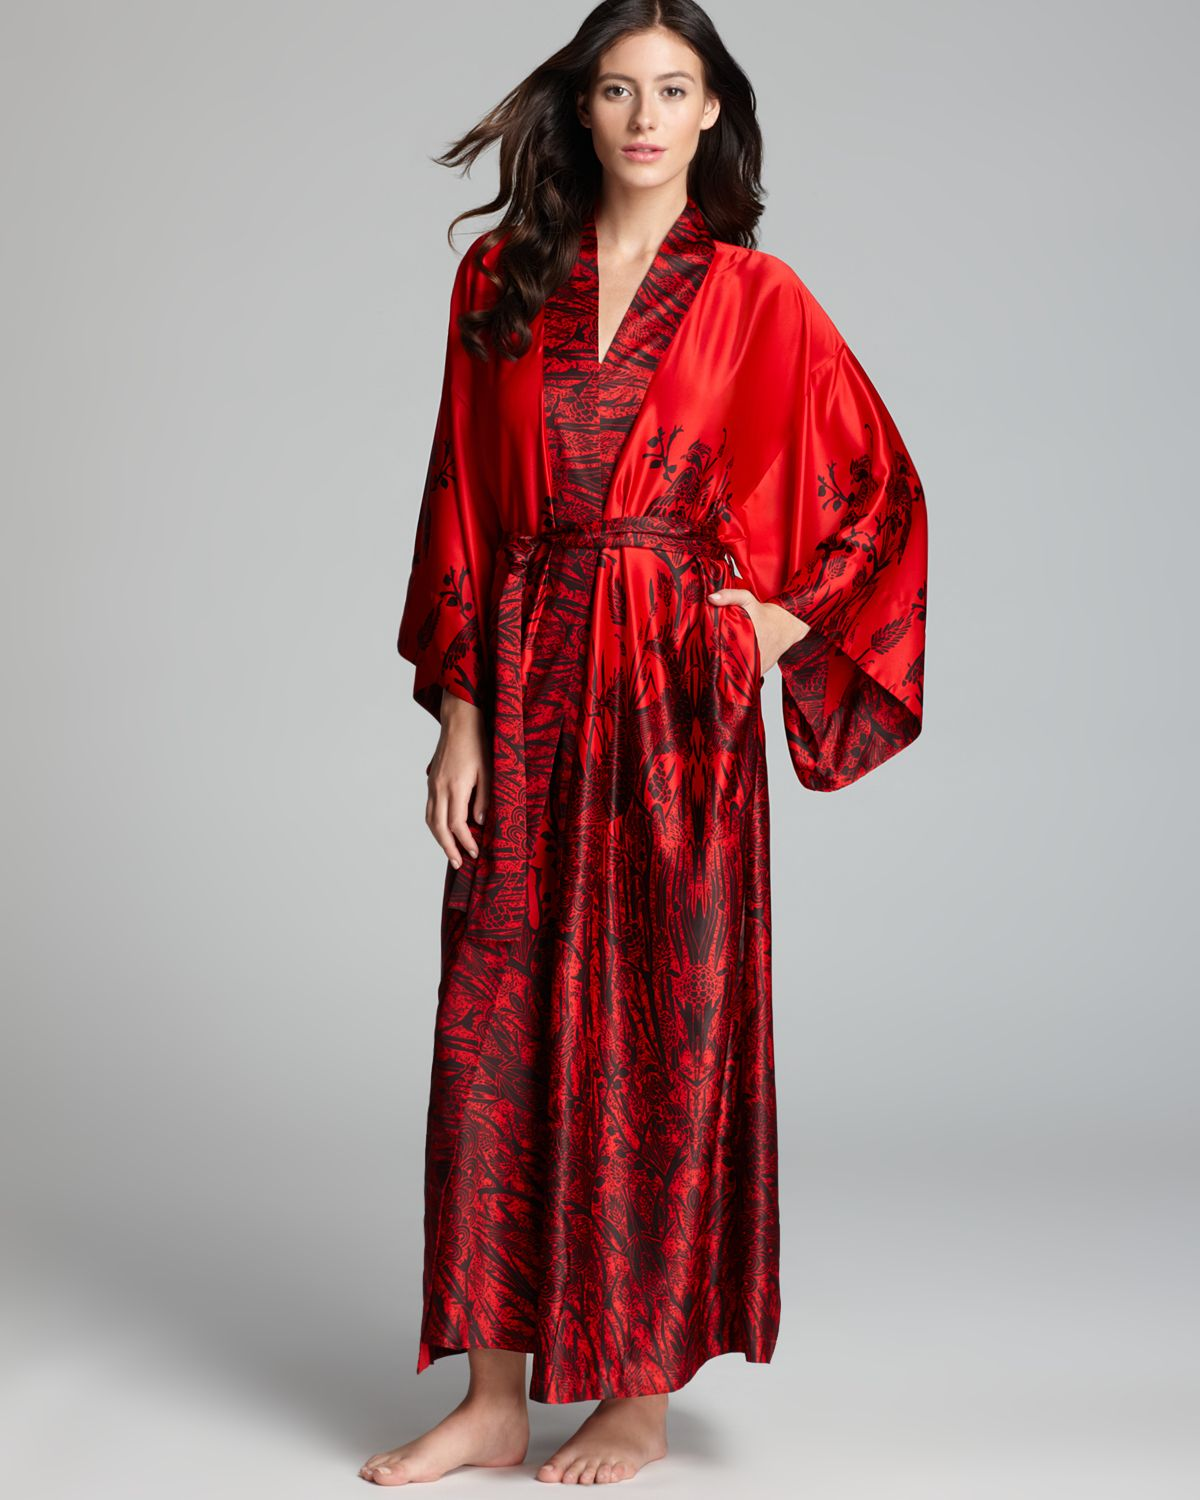 Natori Phoenix Robe in Red - Lyst